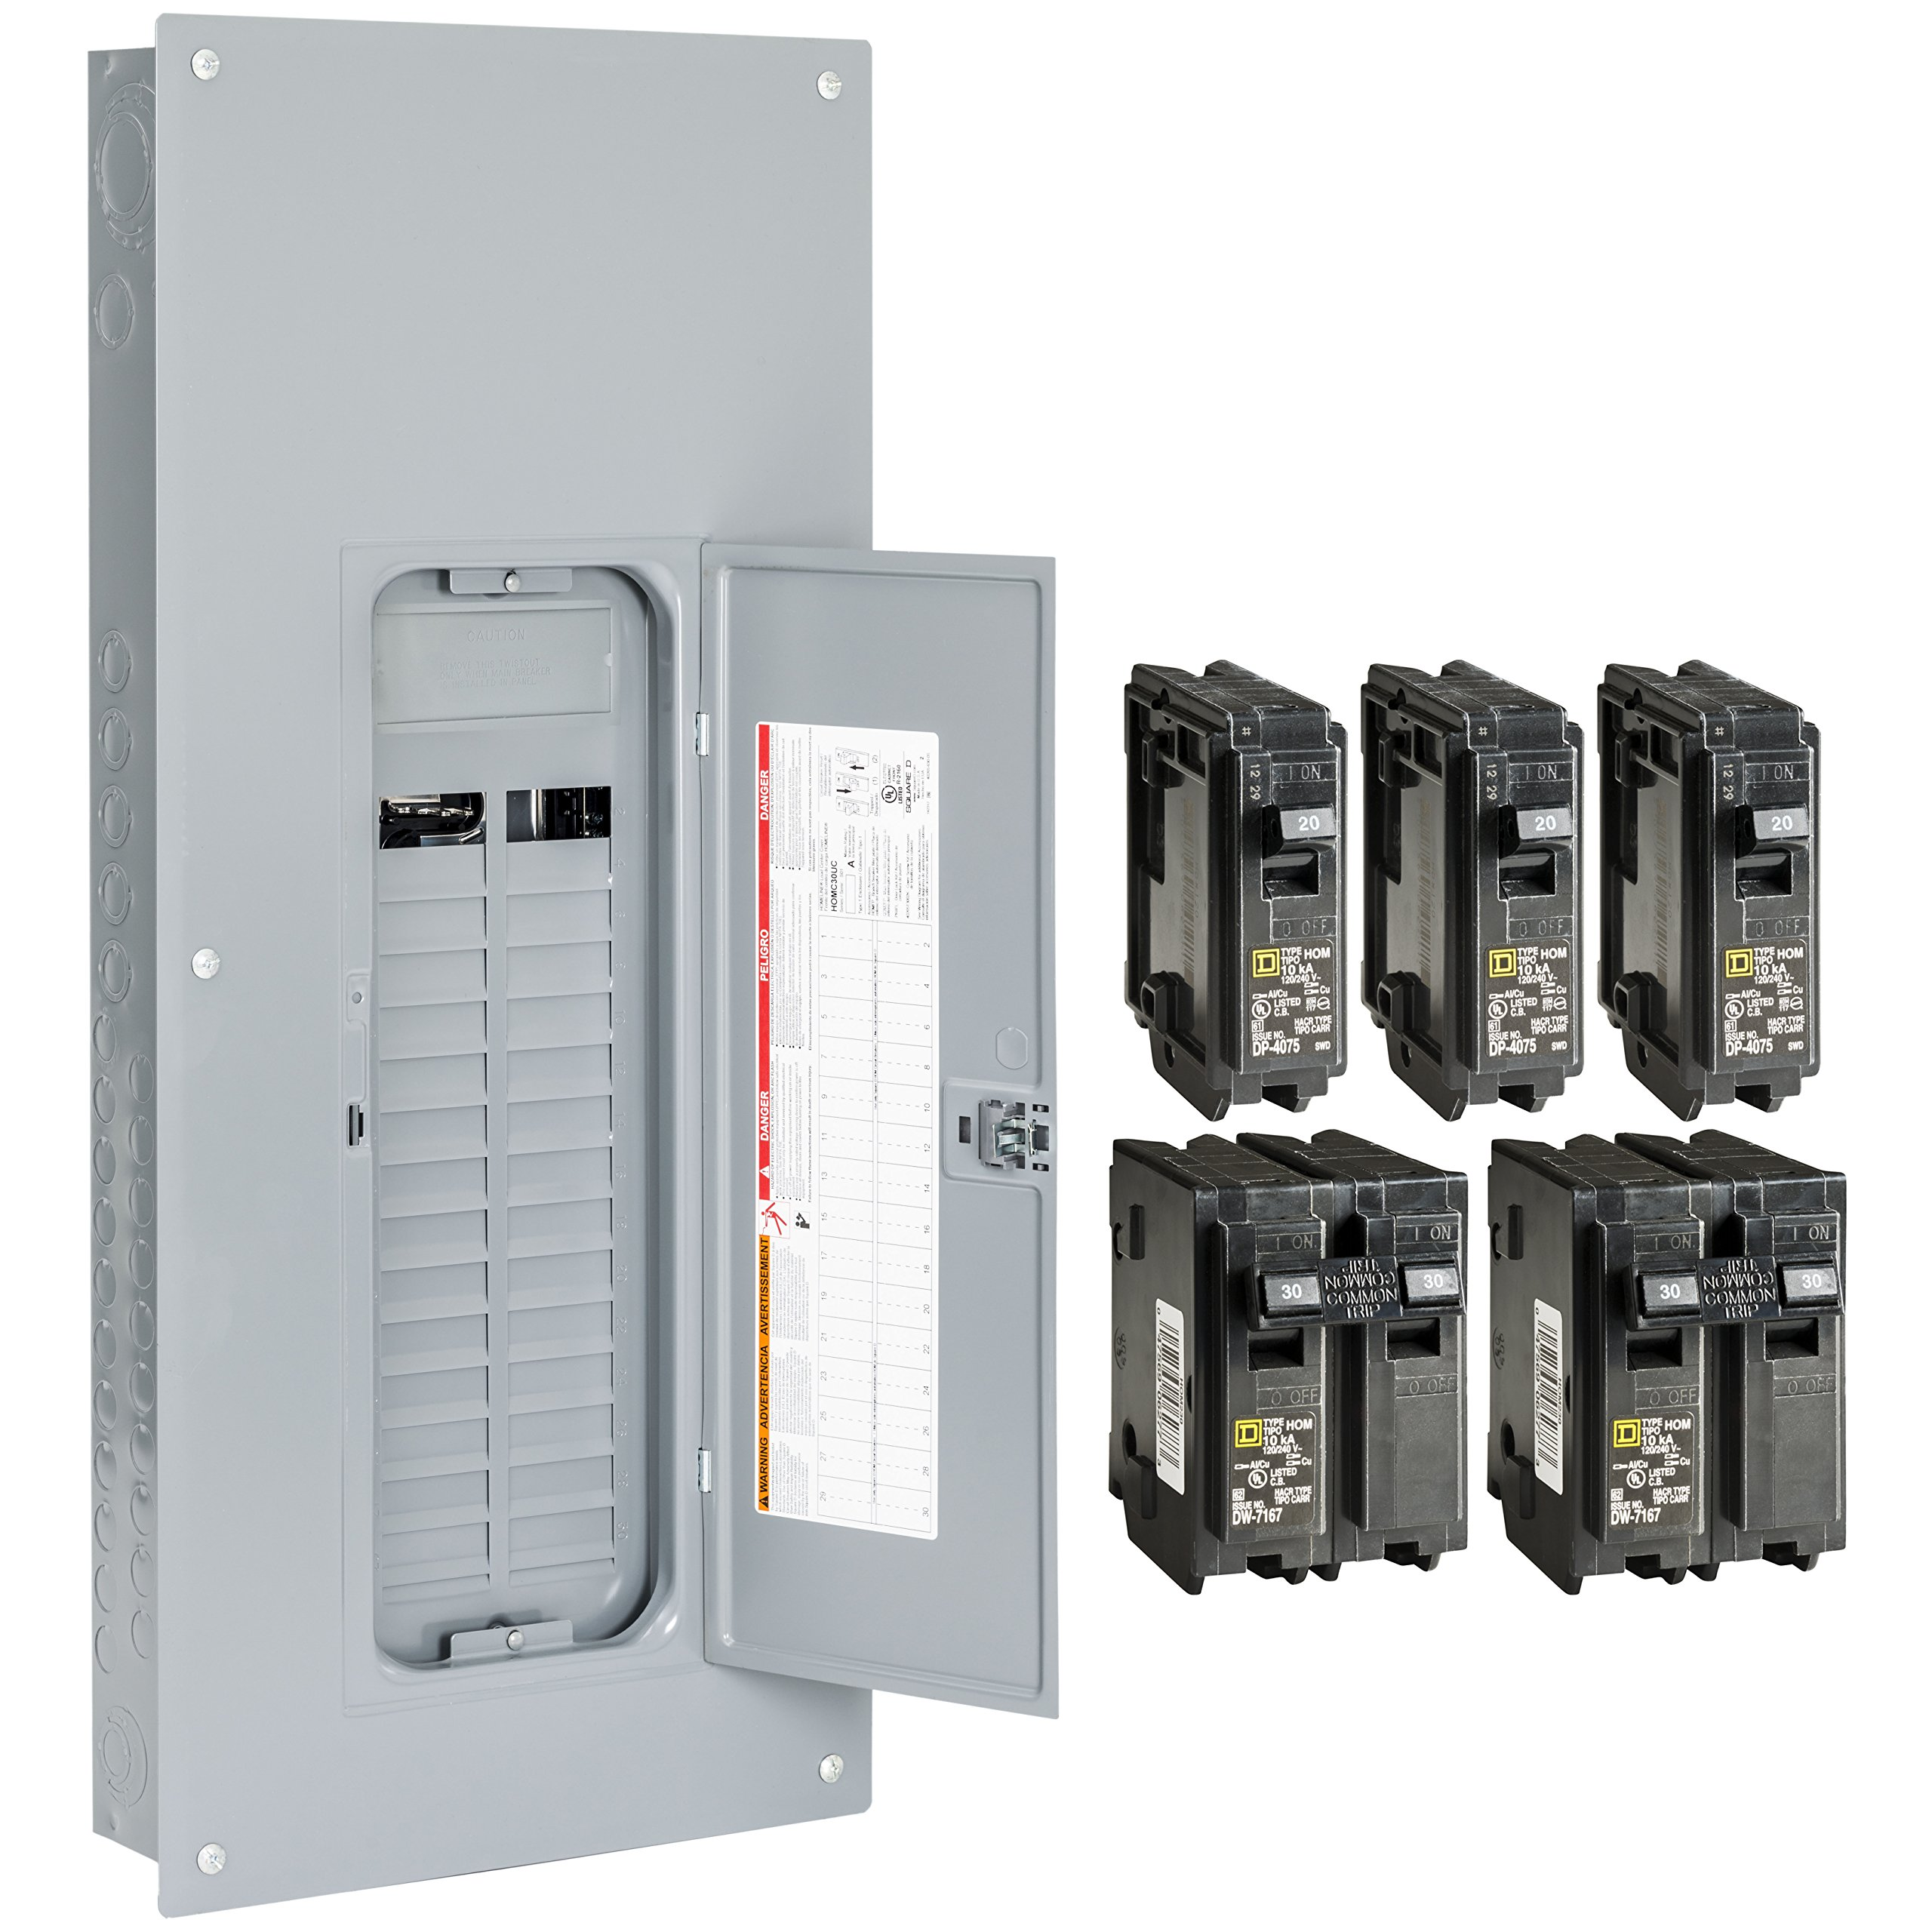 Square D by Schneider Electric HOM3060L225PGCVP Homeline 225 Amp 30-Space 60-Circuit Indoor Main LugsLoad Center with Cover and Ground Bar Value Pack (Plug-on Neutral Ready),